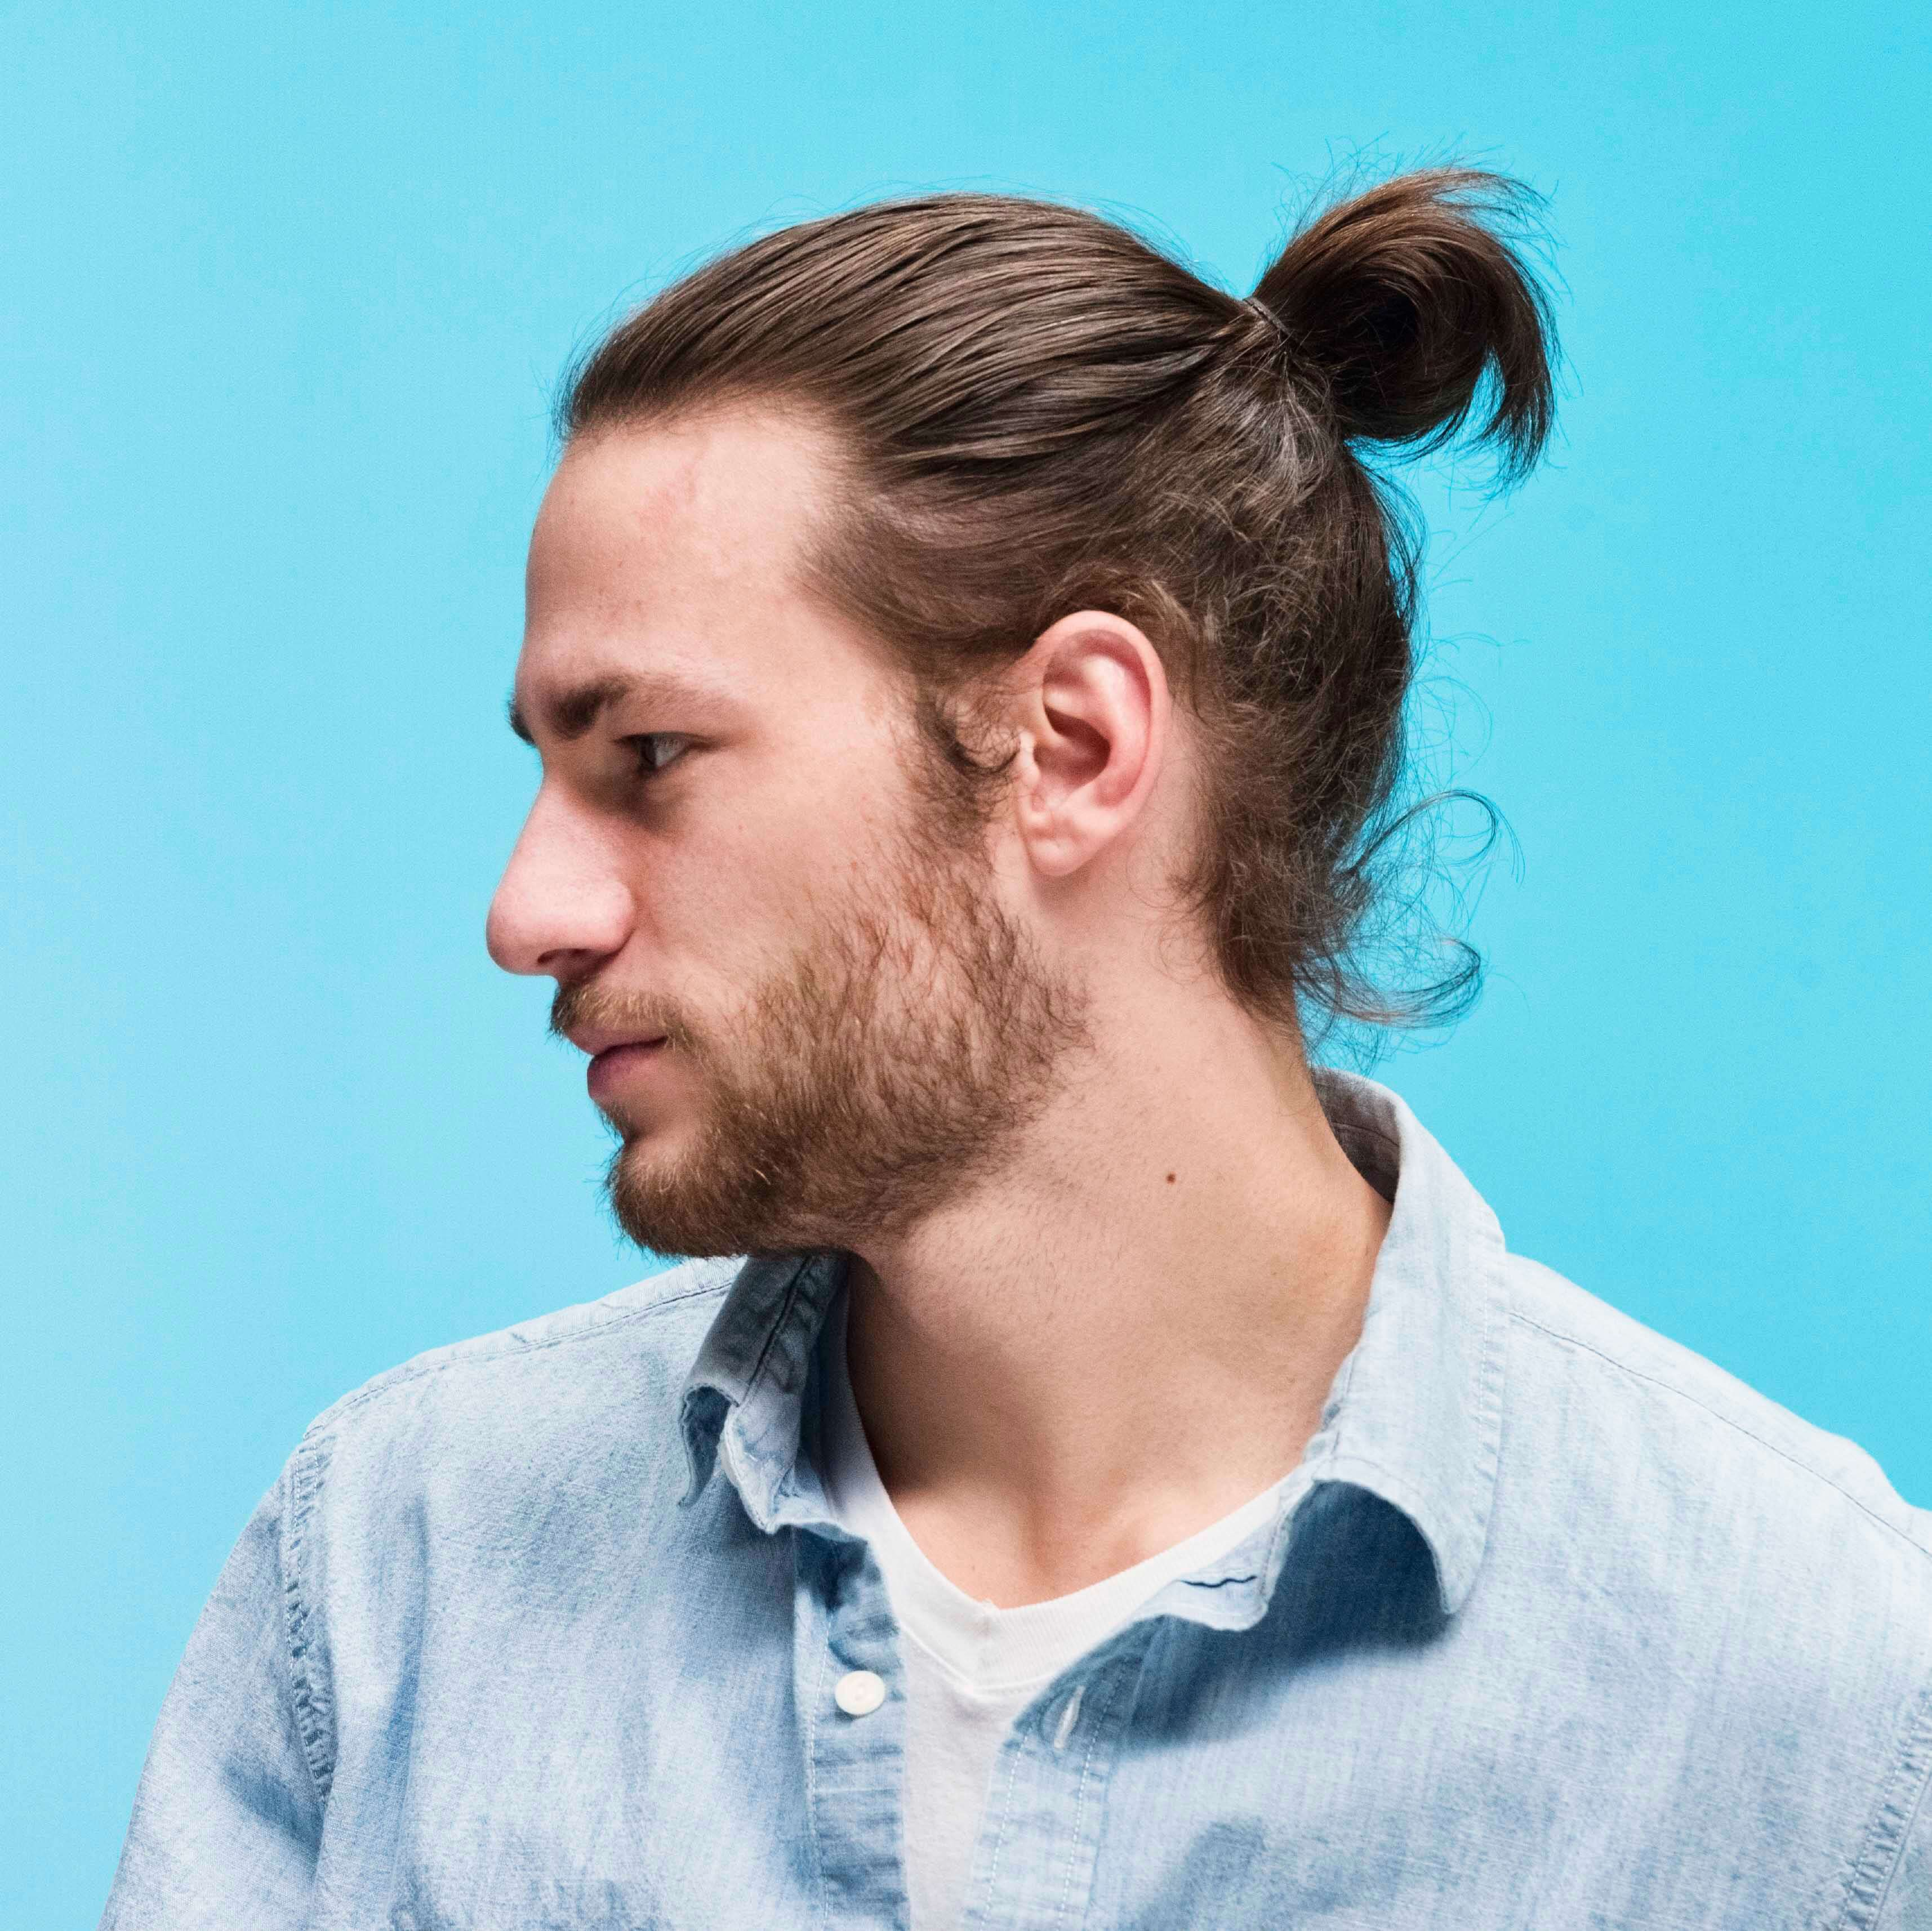 How To Grow A Man Bun In 6 Steps Men S Hairstyle Guide